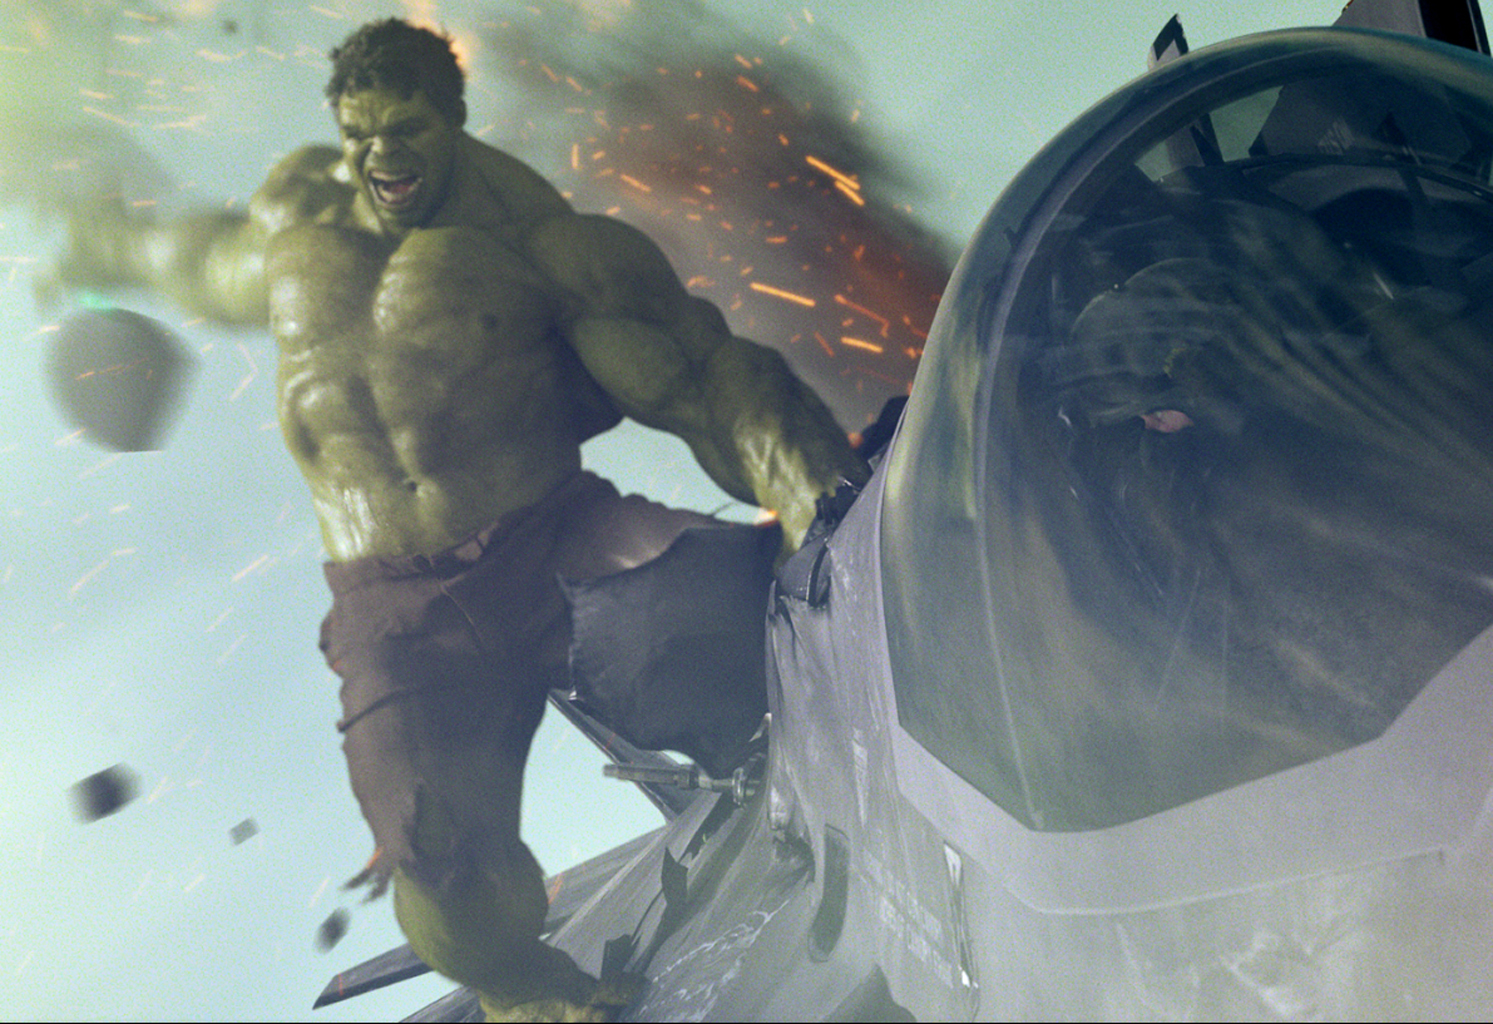 http://4.bp.blogspot.com/-AQ-UKvC2_j8/UHEcJ2vmVoI/AAAAAAAAAFM/o-5Iu_lId24/s1600/Marvel-The-Avengers-Movie-2012-HD-Wallpaper-The-Hulk-Bruce-Banner-53.jpg